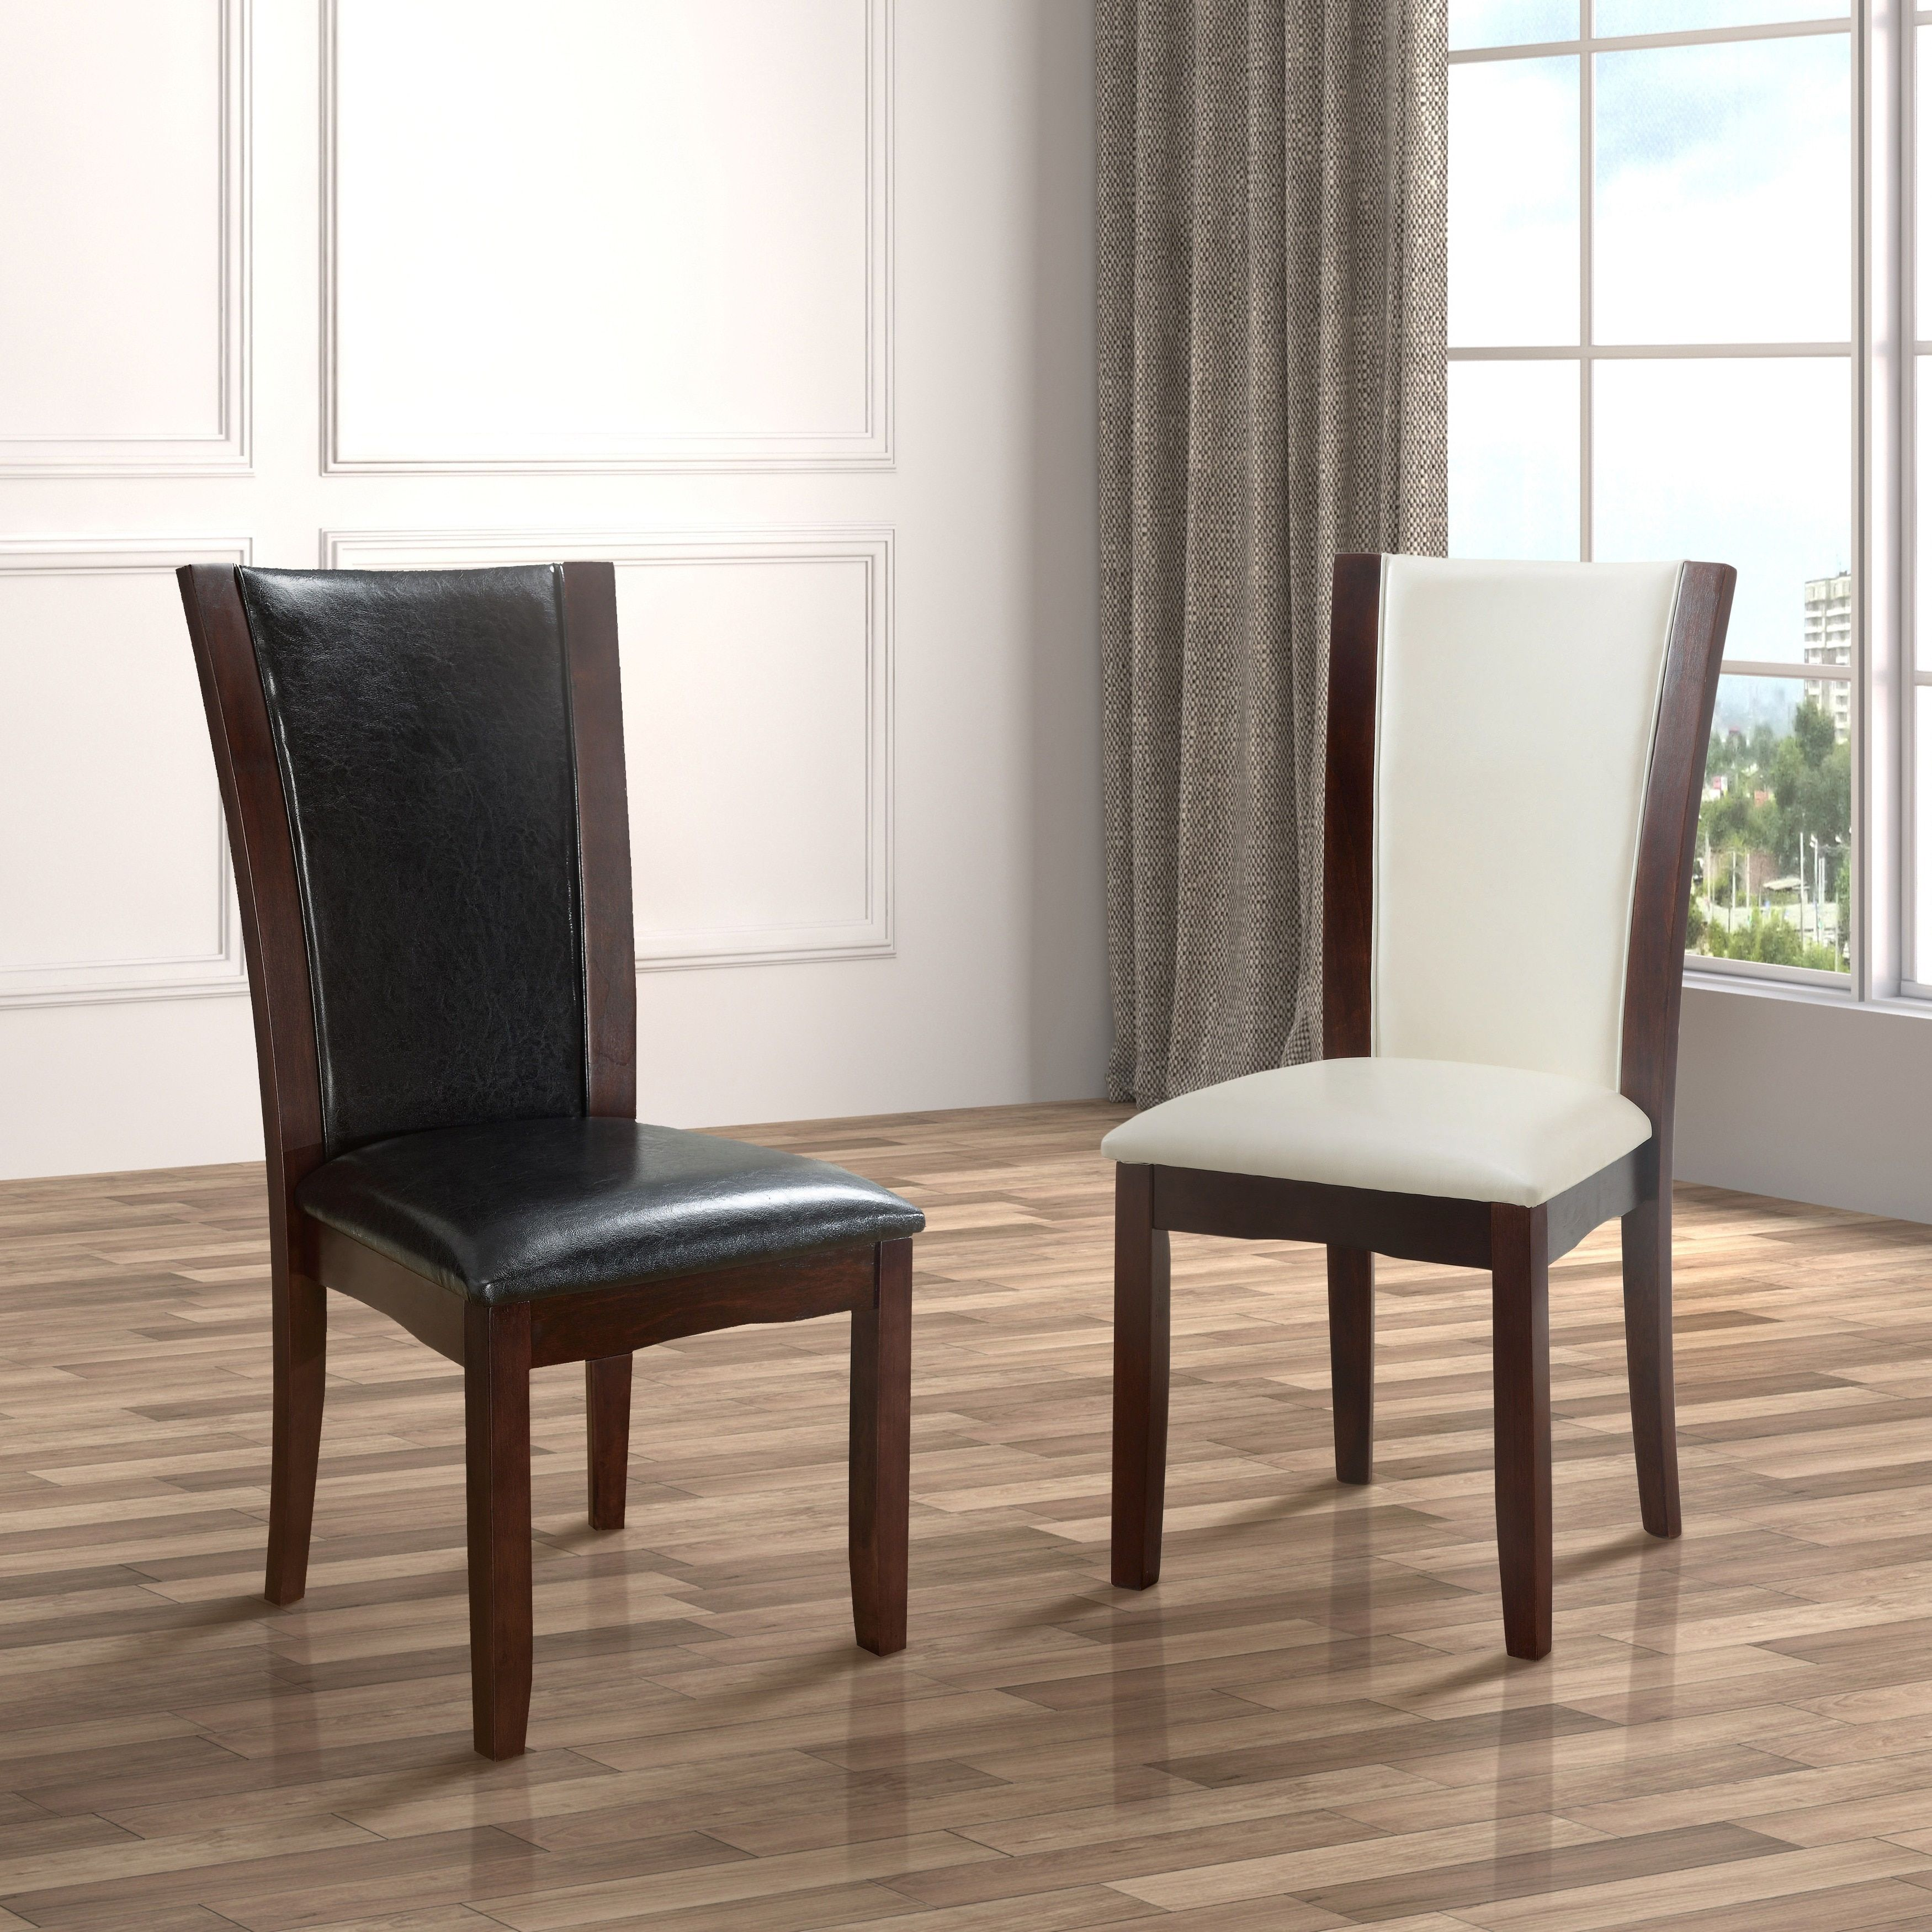 Shop Our Biggest Semi Annual Sale Now Black Leather Dining Chair